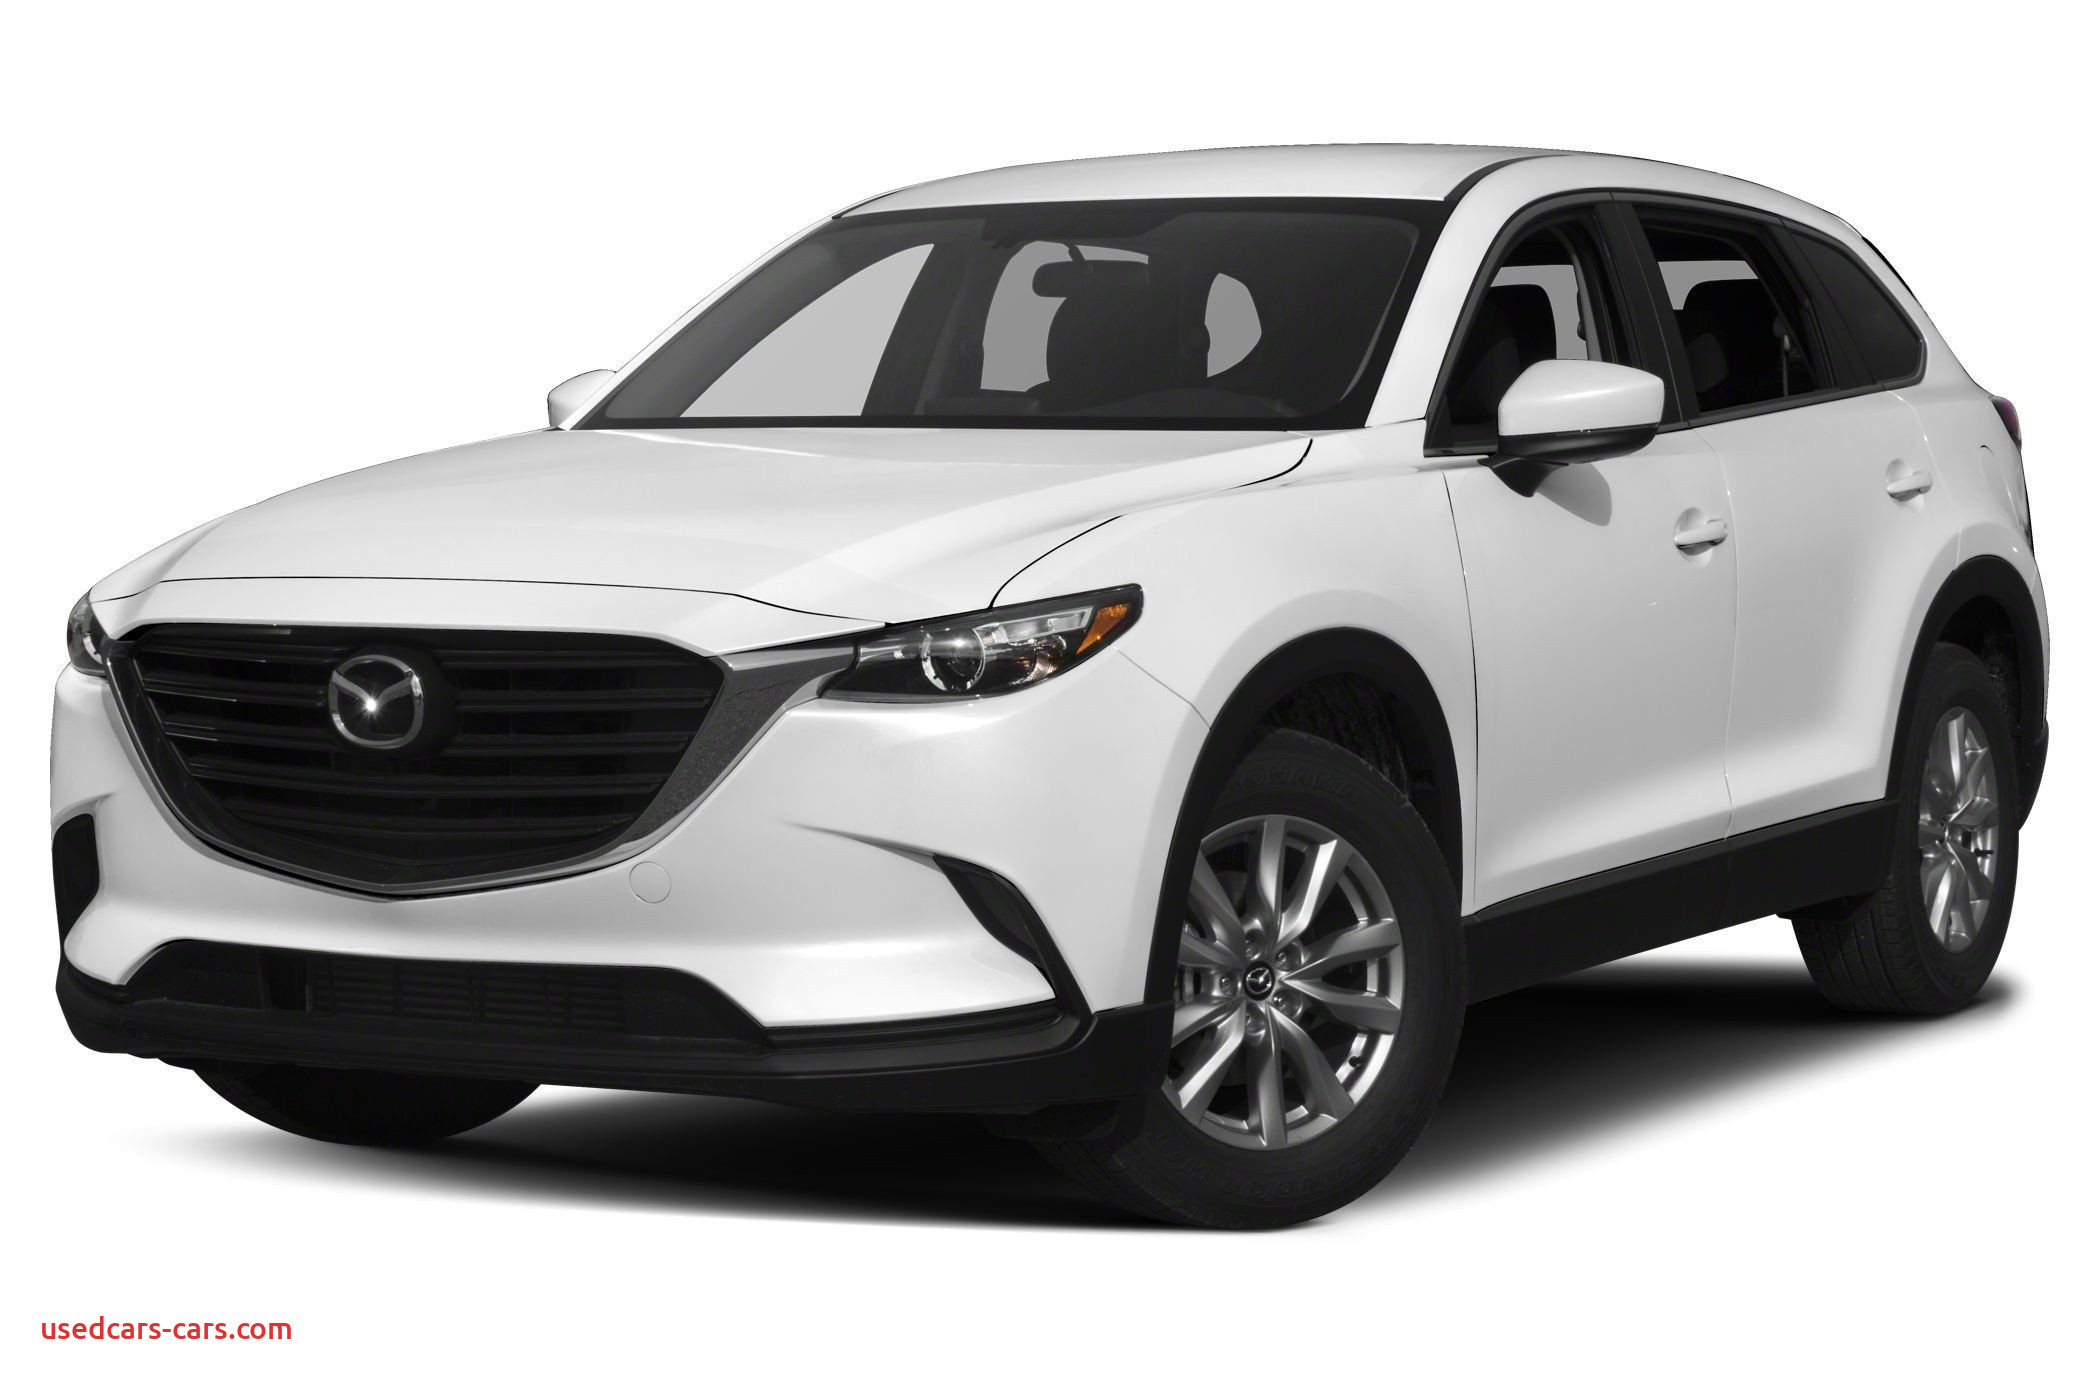 Who Makes Mazda Luxury the 2020 Mazda Cx 5 Concept Redesign and Review Car Price